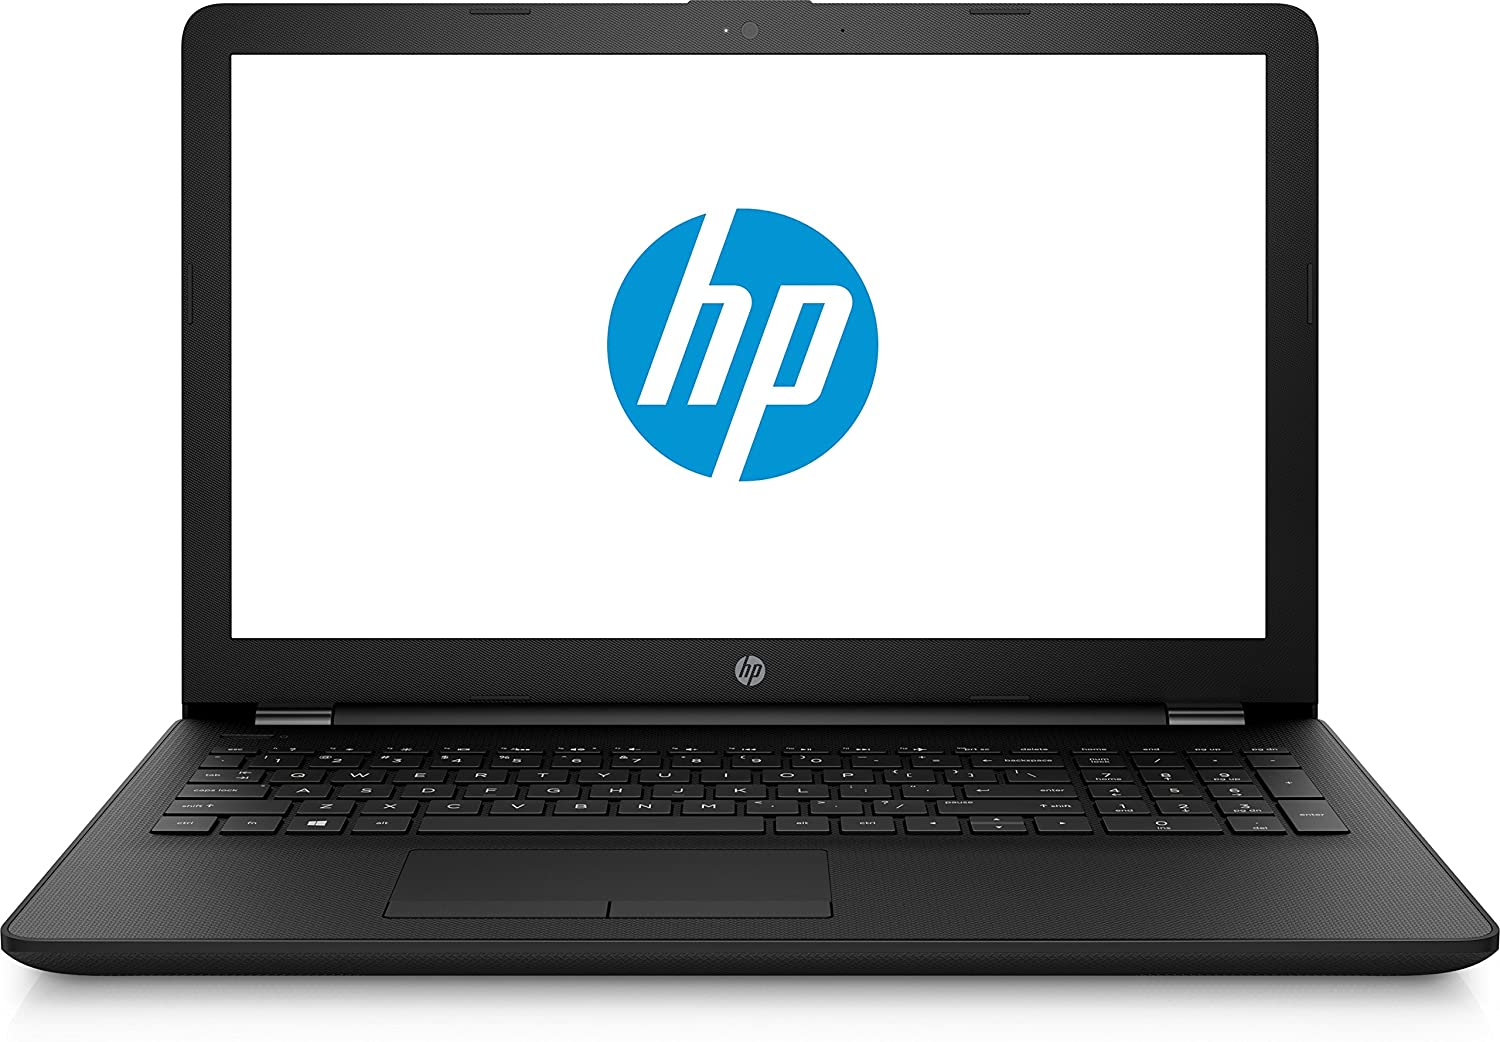 HP Notebook 15-bw002ns - Ordenador portátil 15.6